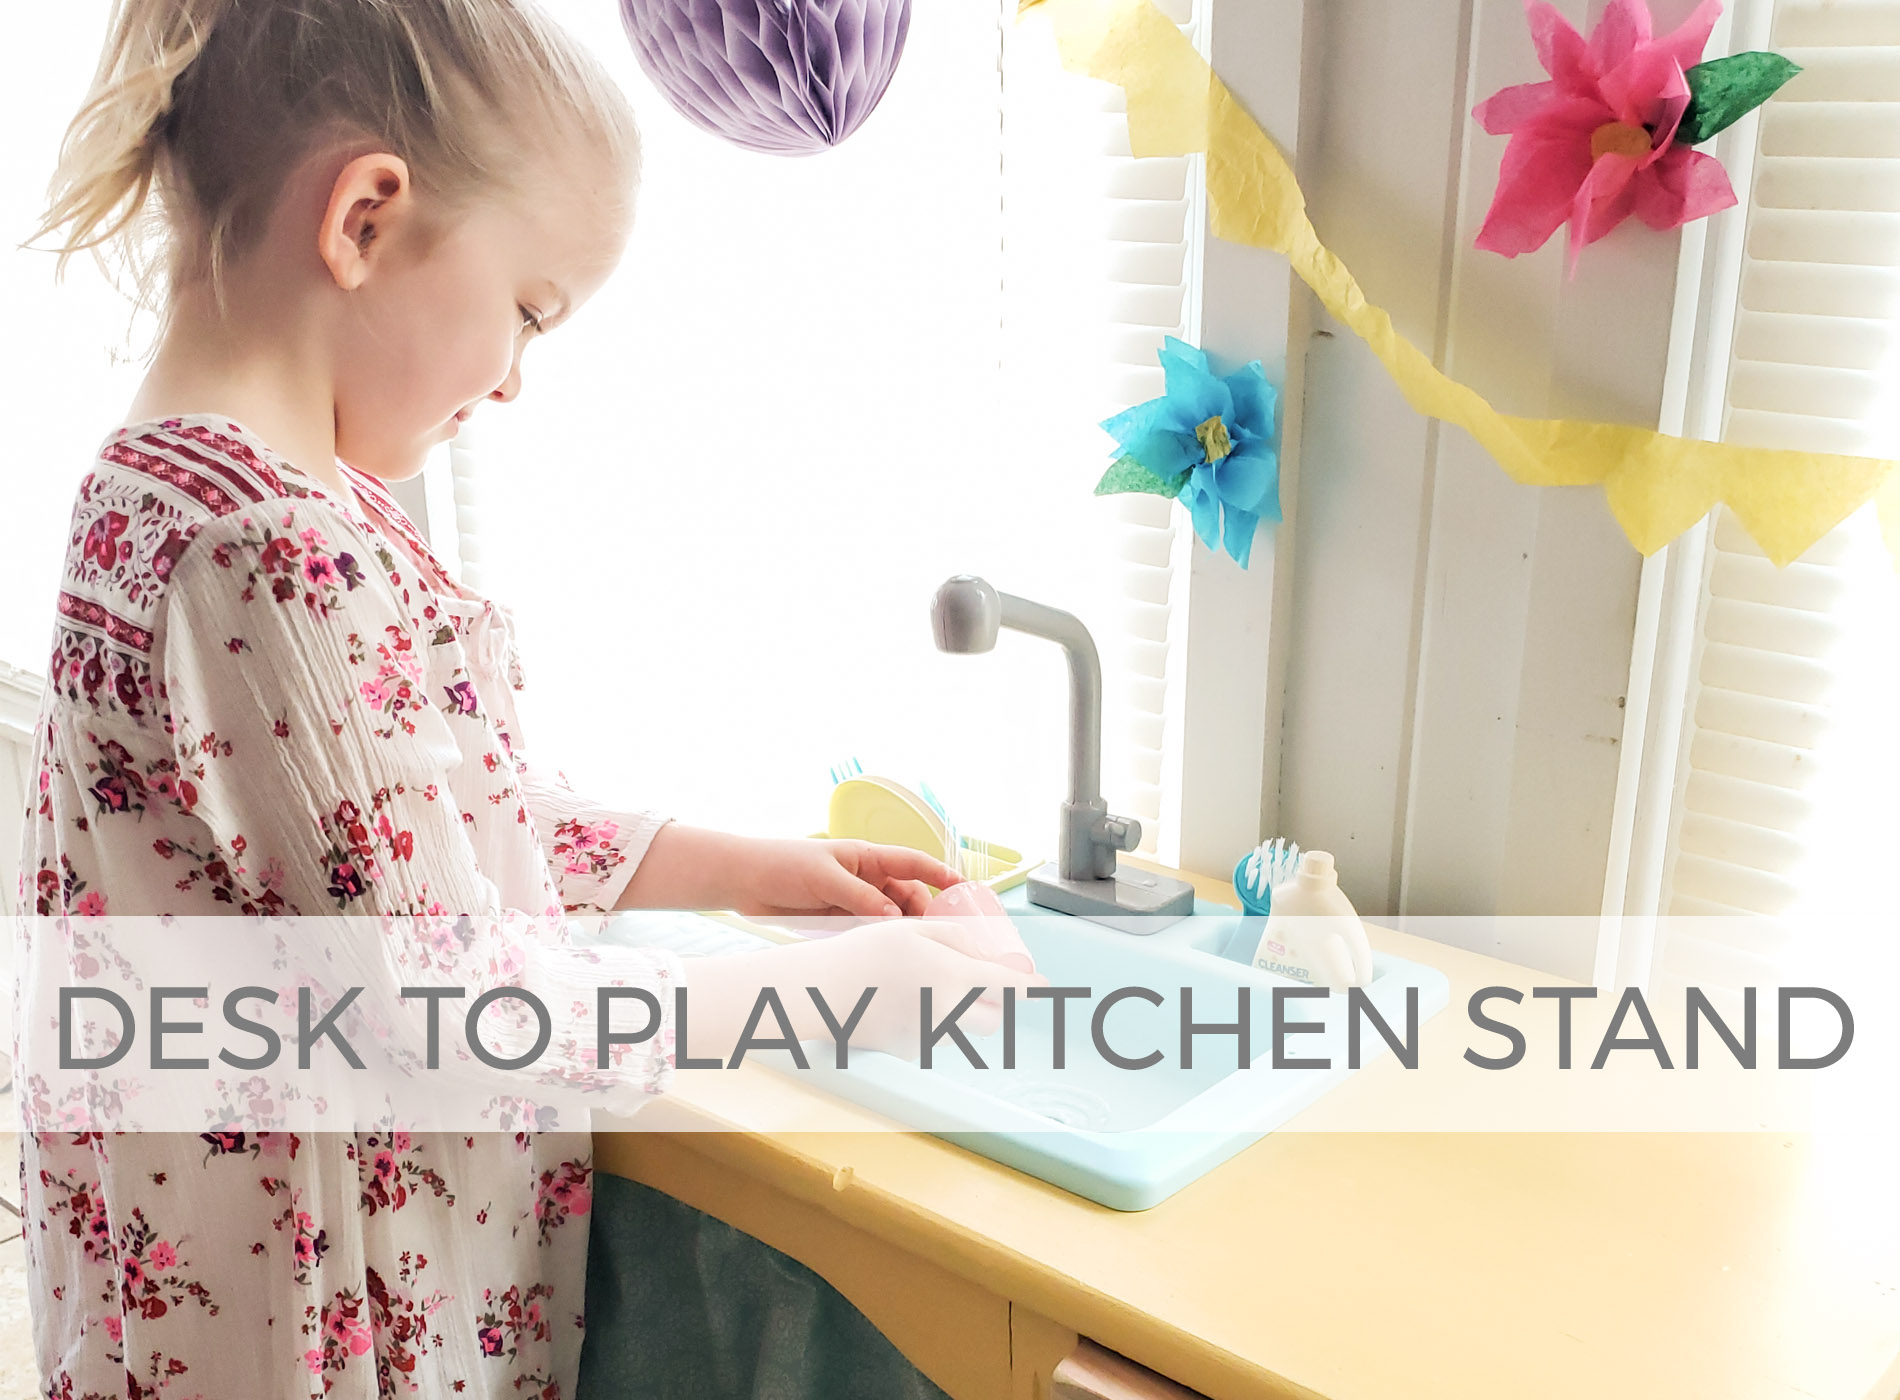 Child's Desk Upcycled into Play Kitchen with Running Water by Larissa of Prodigal Pieces | prodigalpieces.com